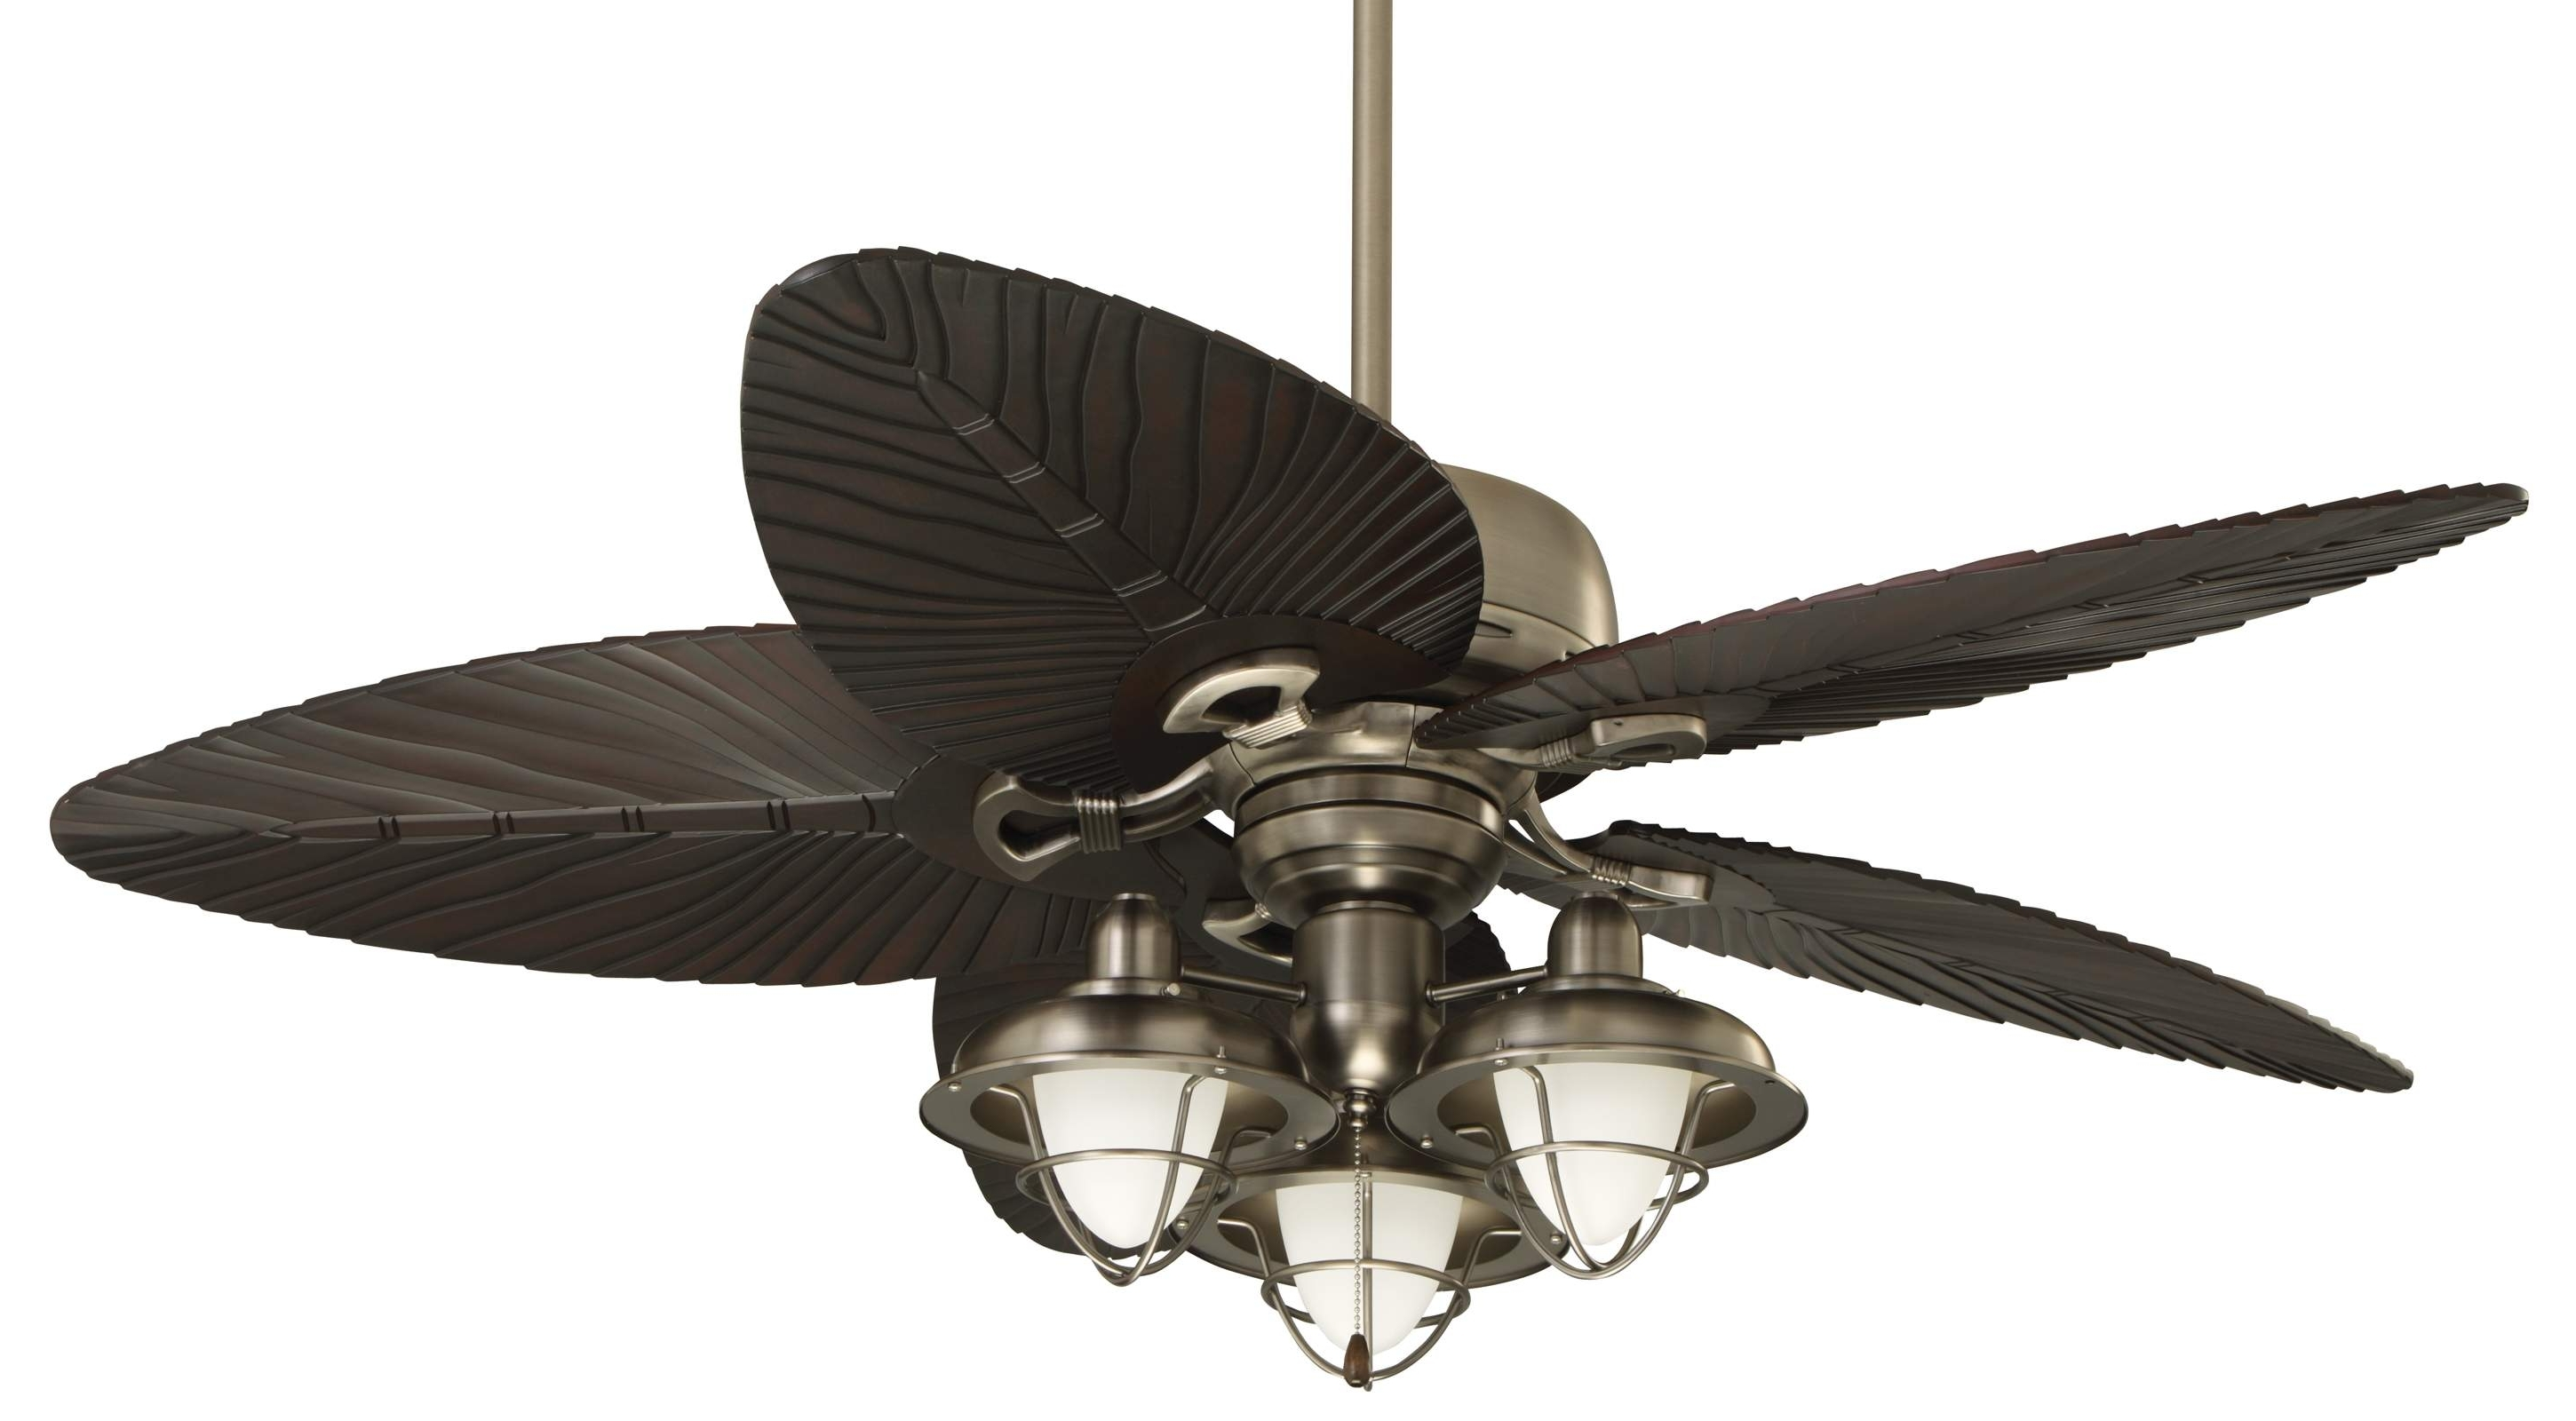 Decor: Bring An Island Look Into Your Home With Cool Ceiling Fan For Popular Outdoor Ceiling Fans At Lowes (View 17 of 20)